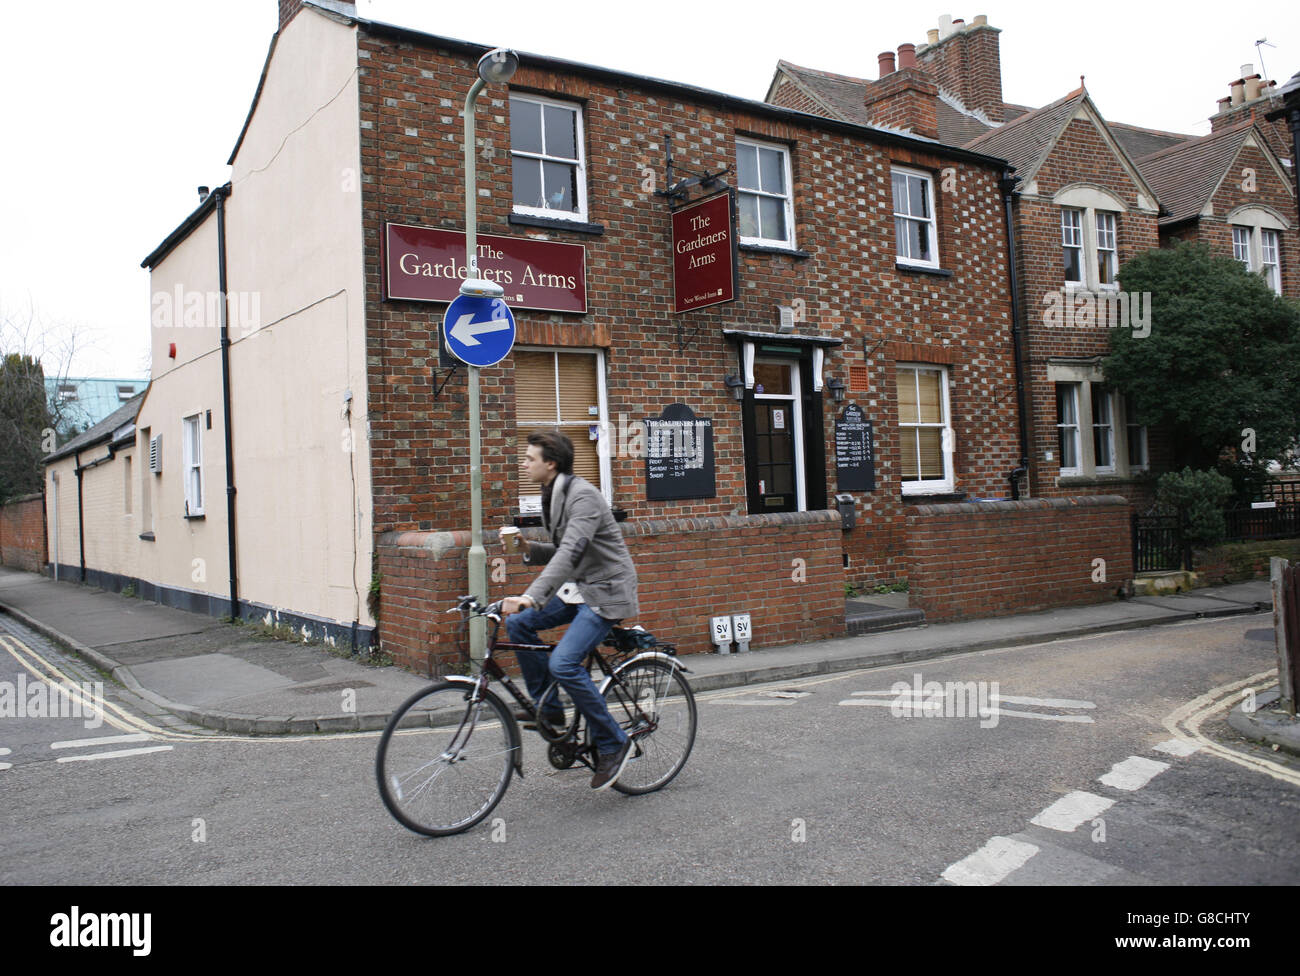 Oxford Pubs. The Gardeners Arms on Plantation Rd resembles an ordinary house in suburbia, and offers excellent  - Stock Image